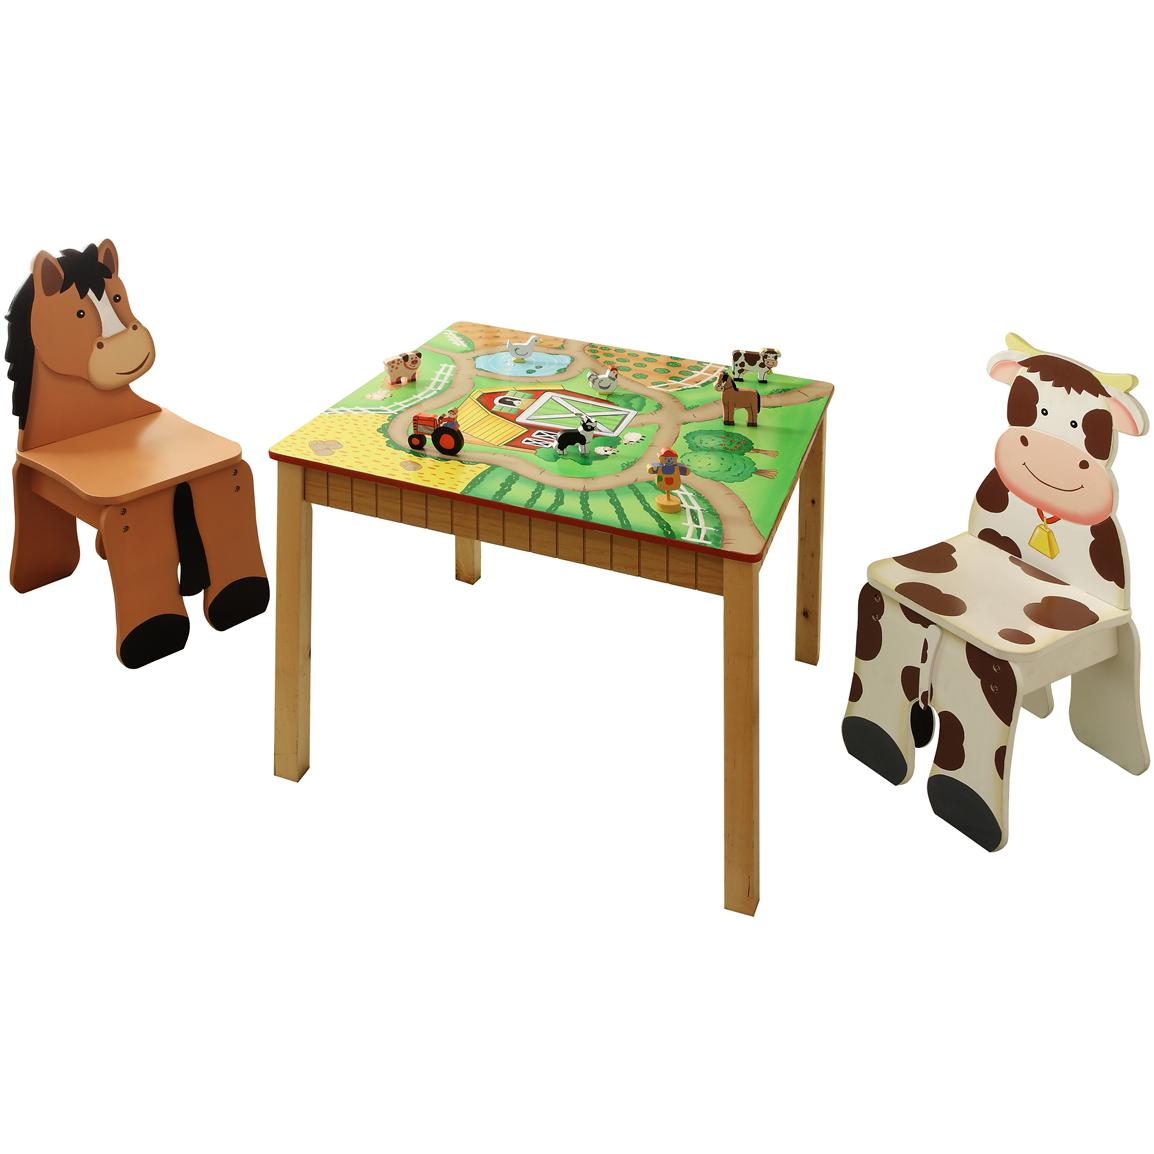 Kids Wooden Table And Chairs Kid 39s Wooden Table And Chair Set From The Teamson Happy